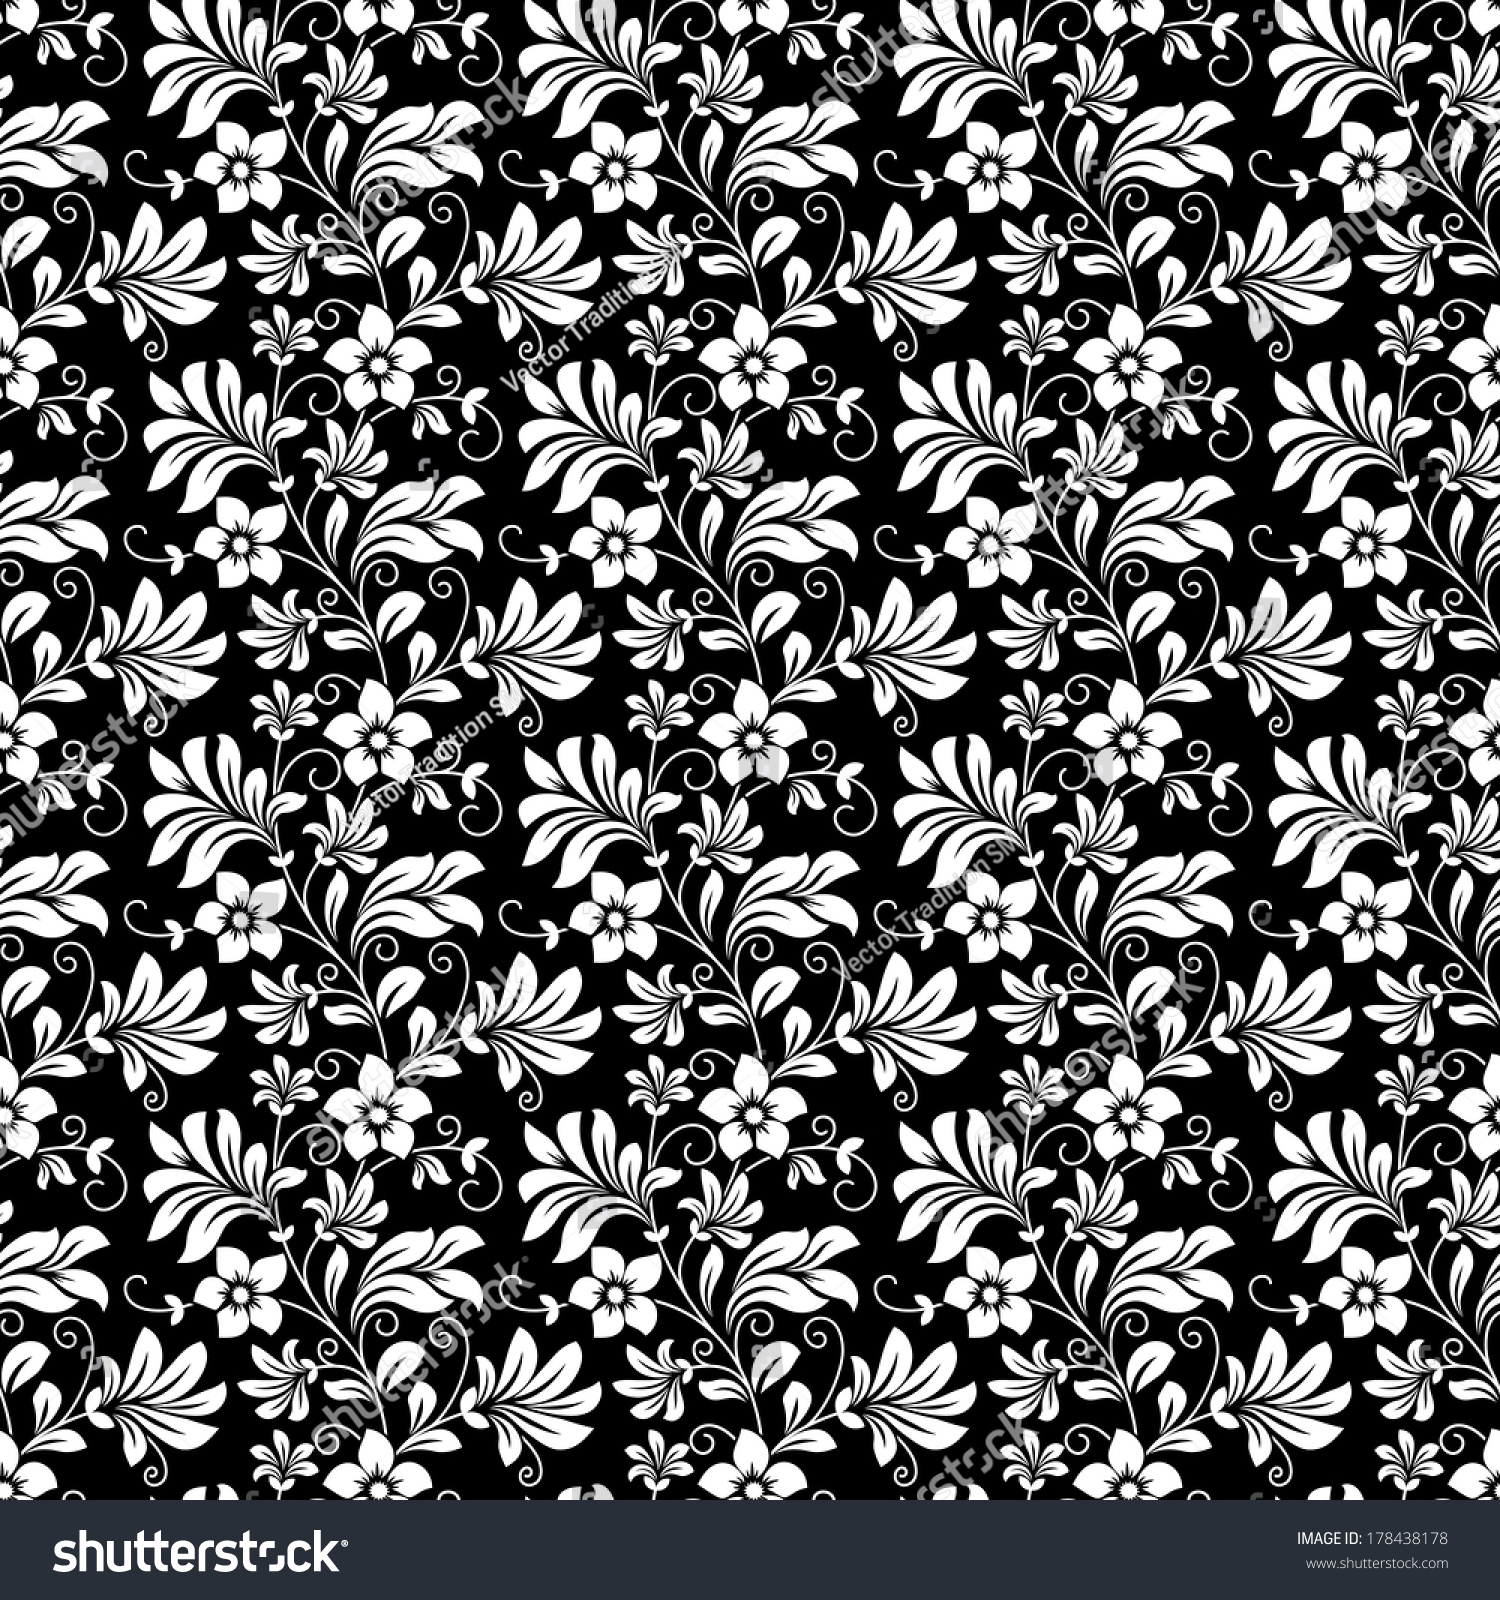 Beautiful Intricate Retro Seamless Floral Pattern Stock Vector